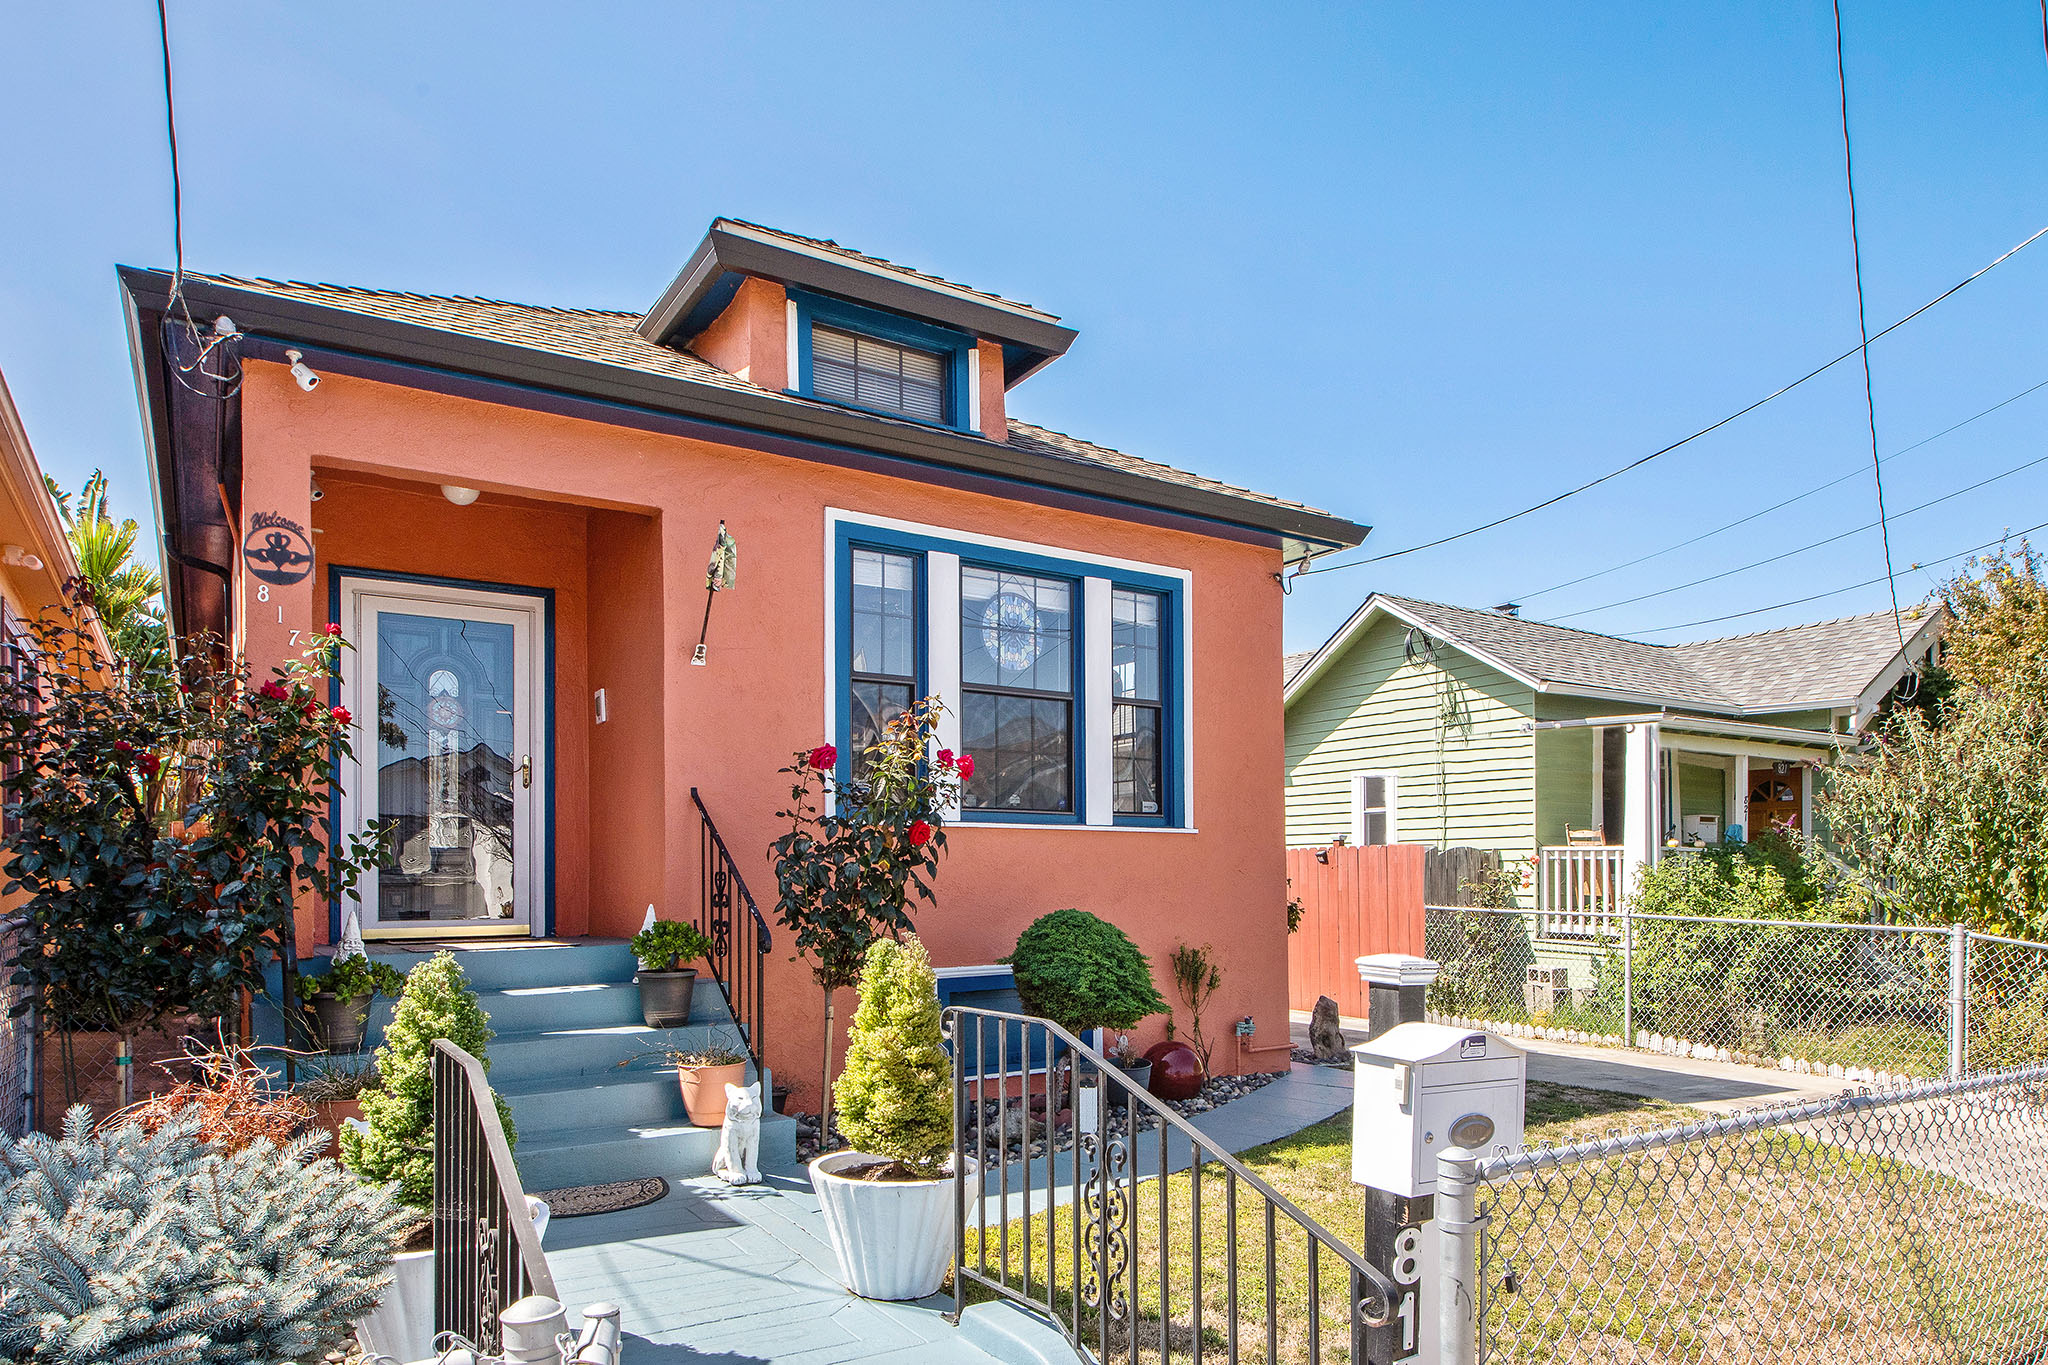 817 44th Street - LONGFELLOW, OAKLAND2 bed, 1 bath, 940 sq ftListed at $639,000